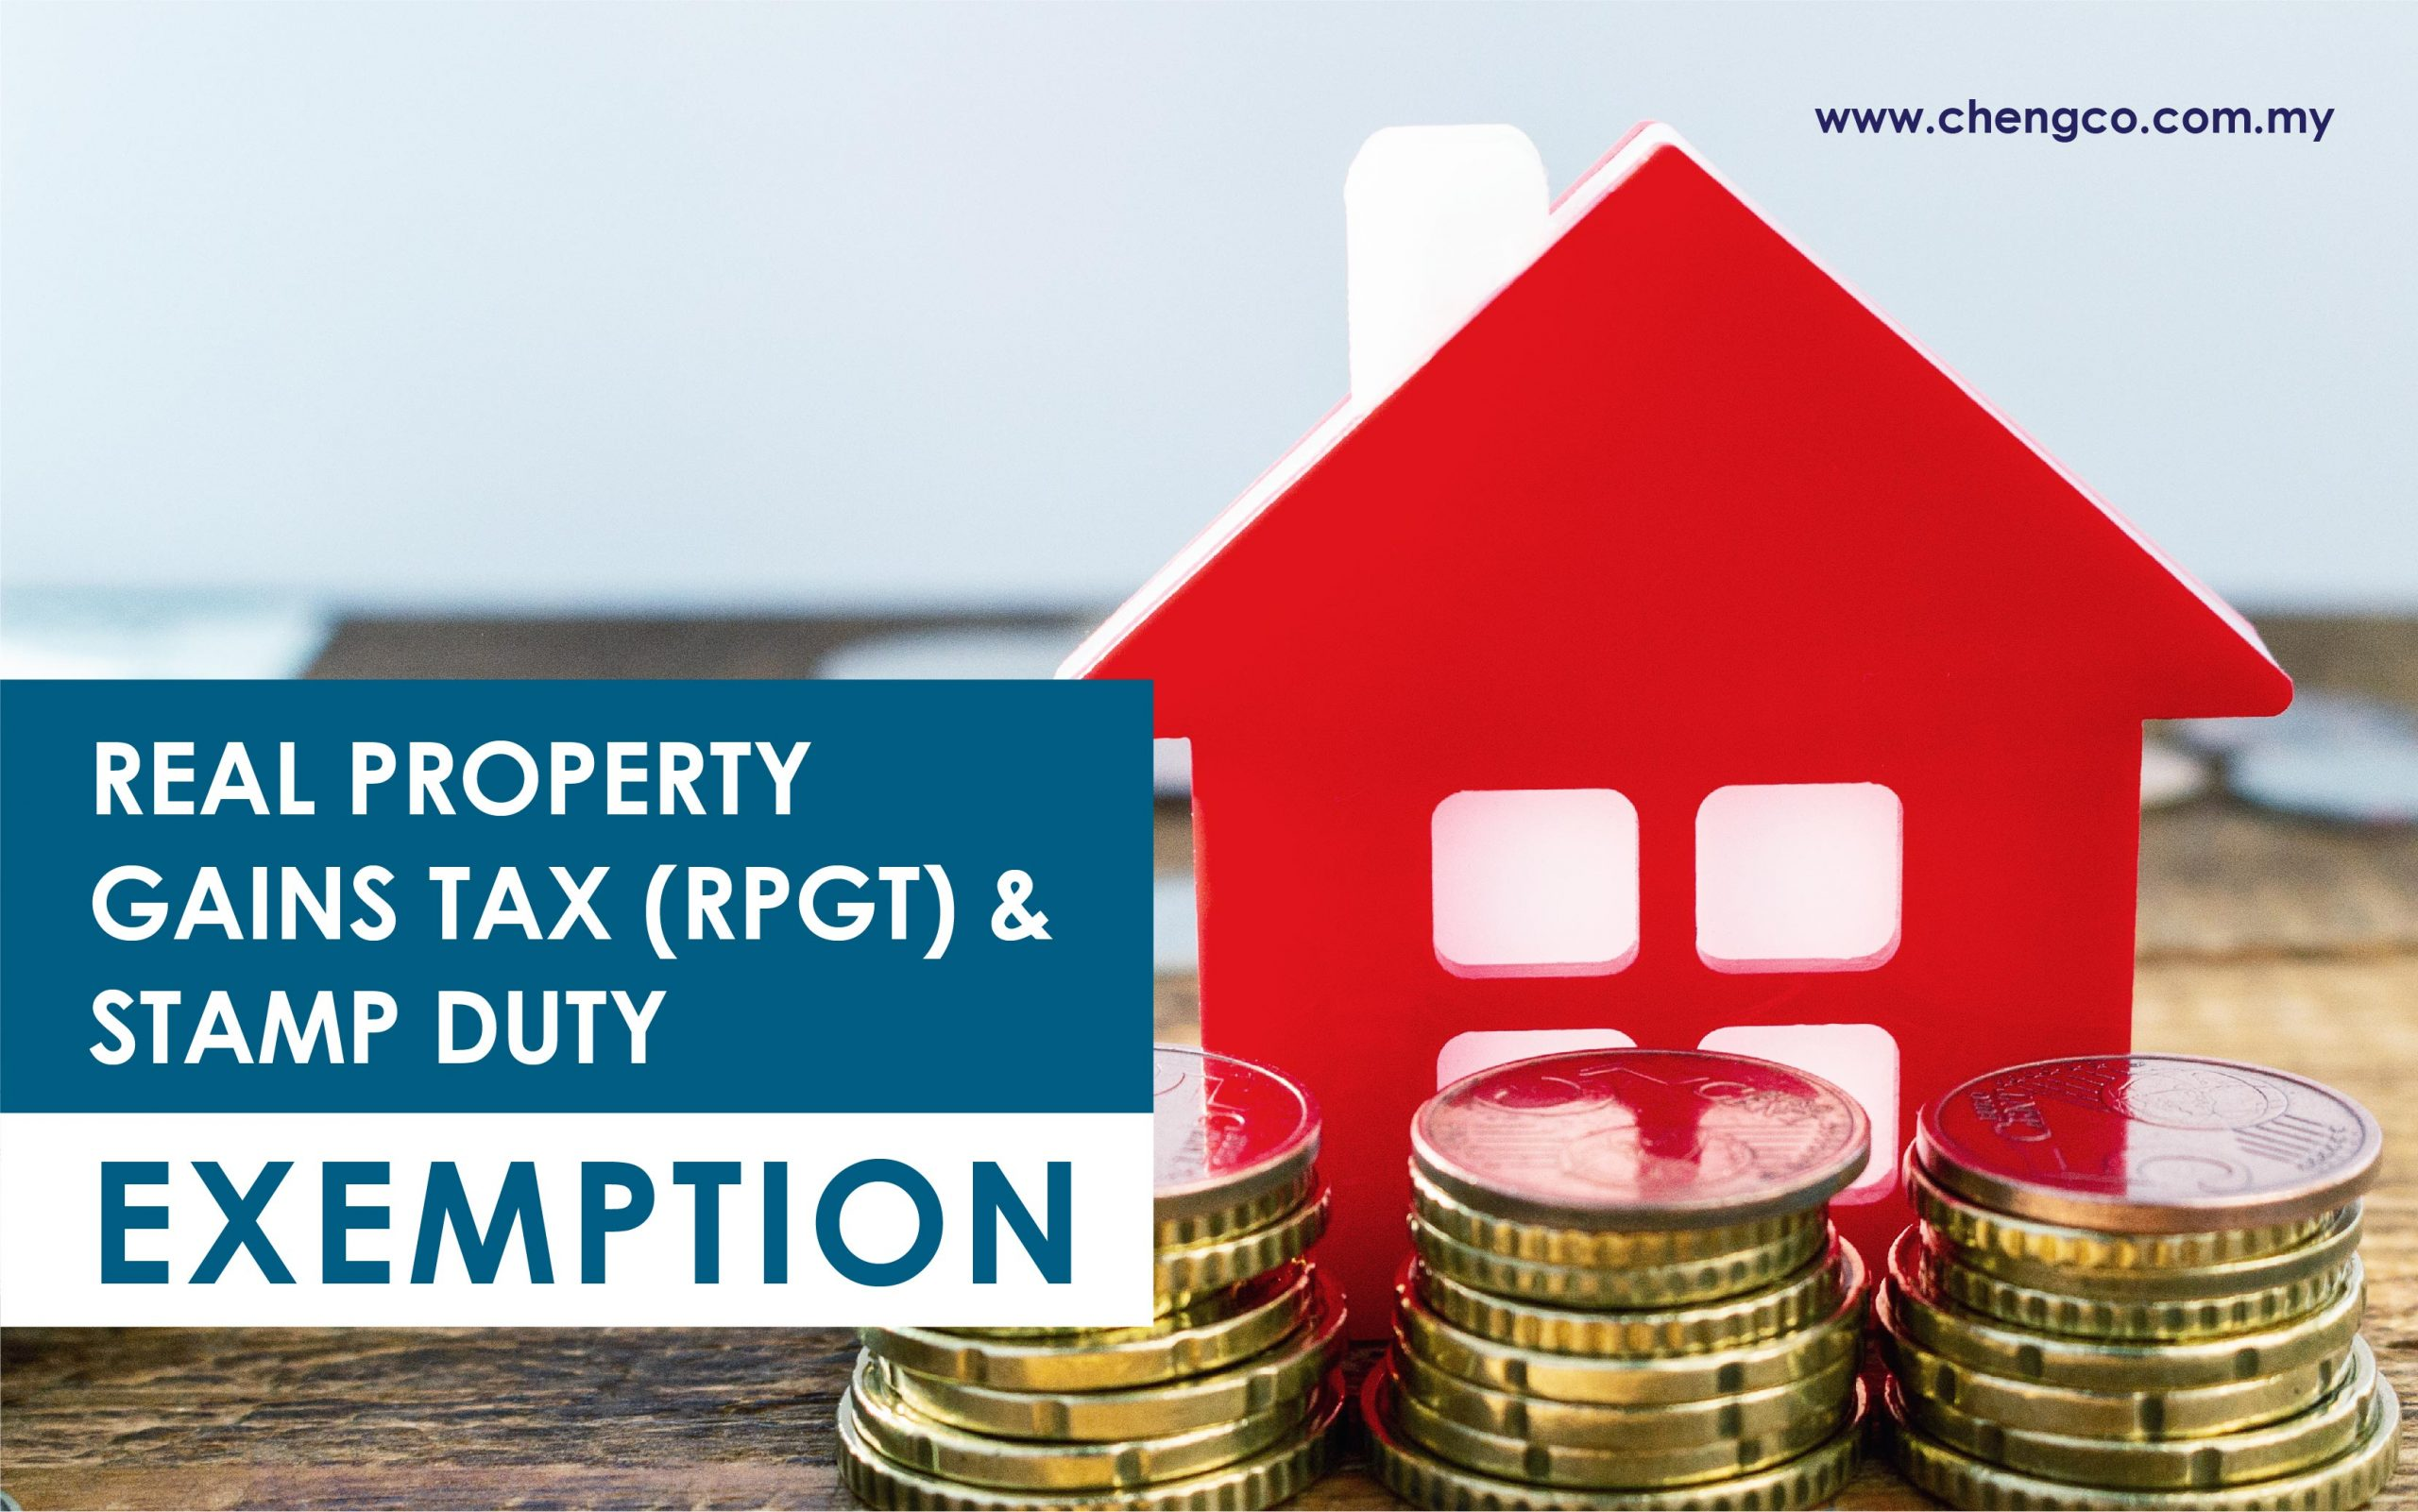 Real Property Gains Tax Rpgt And Stamp Duty Exemption Cheng Co